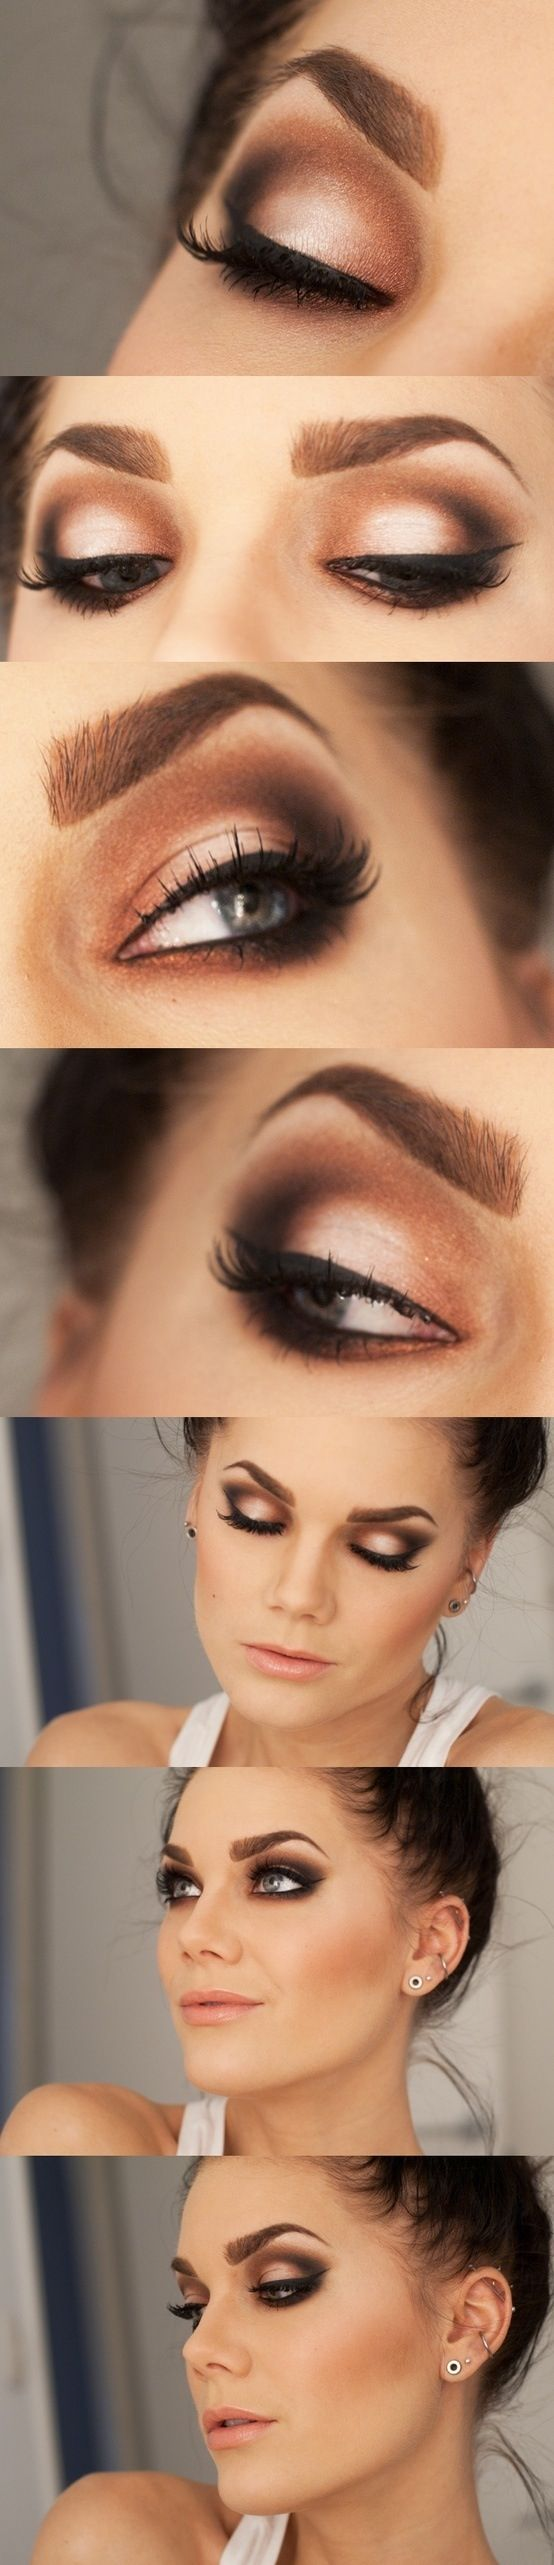 Sublime smoking eye #makeup #beauty   Spritzi, beauty blogs news in real Time #blogger